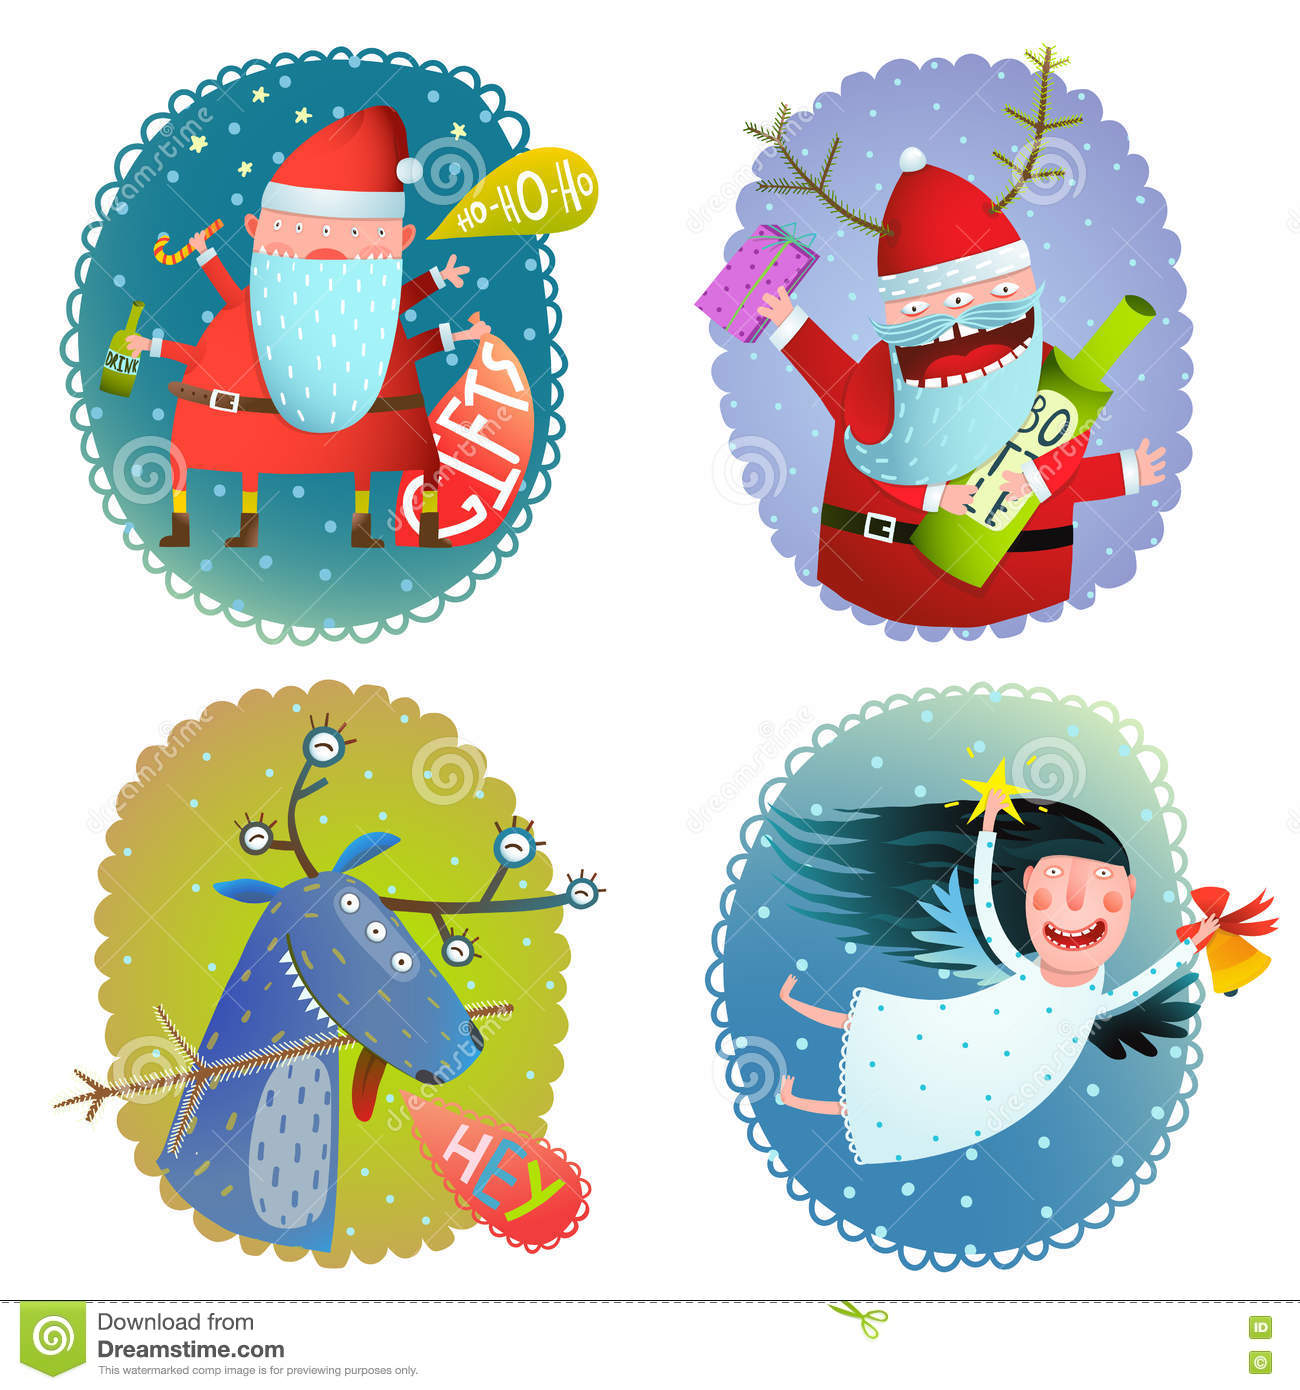 Christmas or new year winter holidays greeting cards collection with christmas or new year holidays crazy cartoon funny greeting card designs vector illustration m4hsunfo